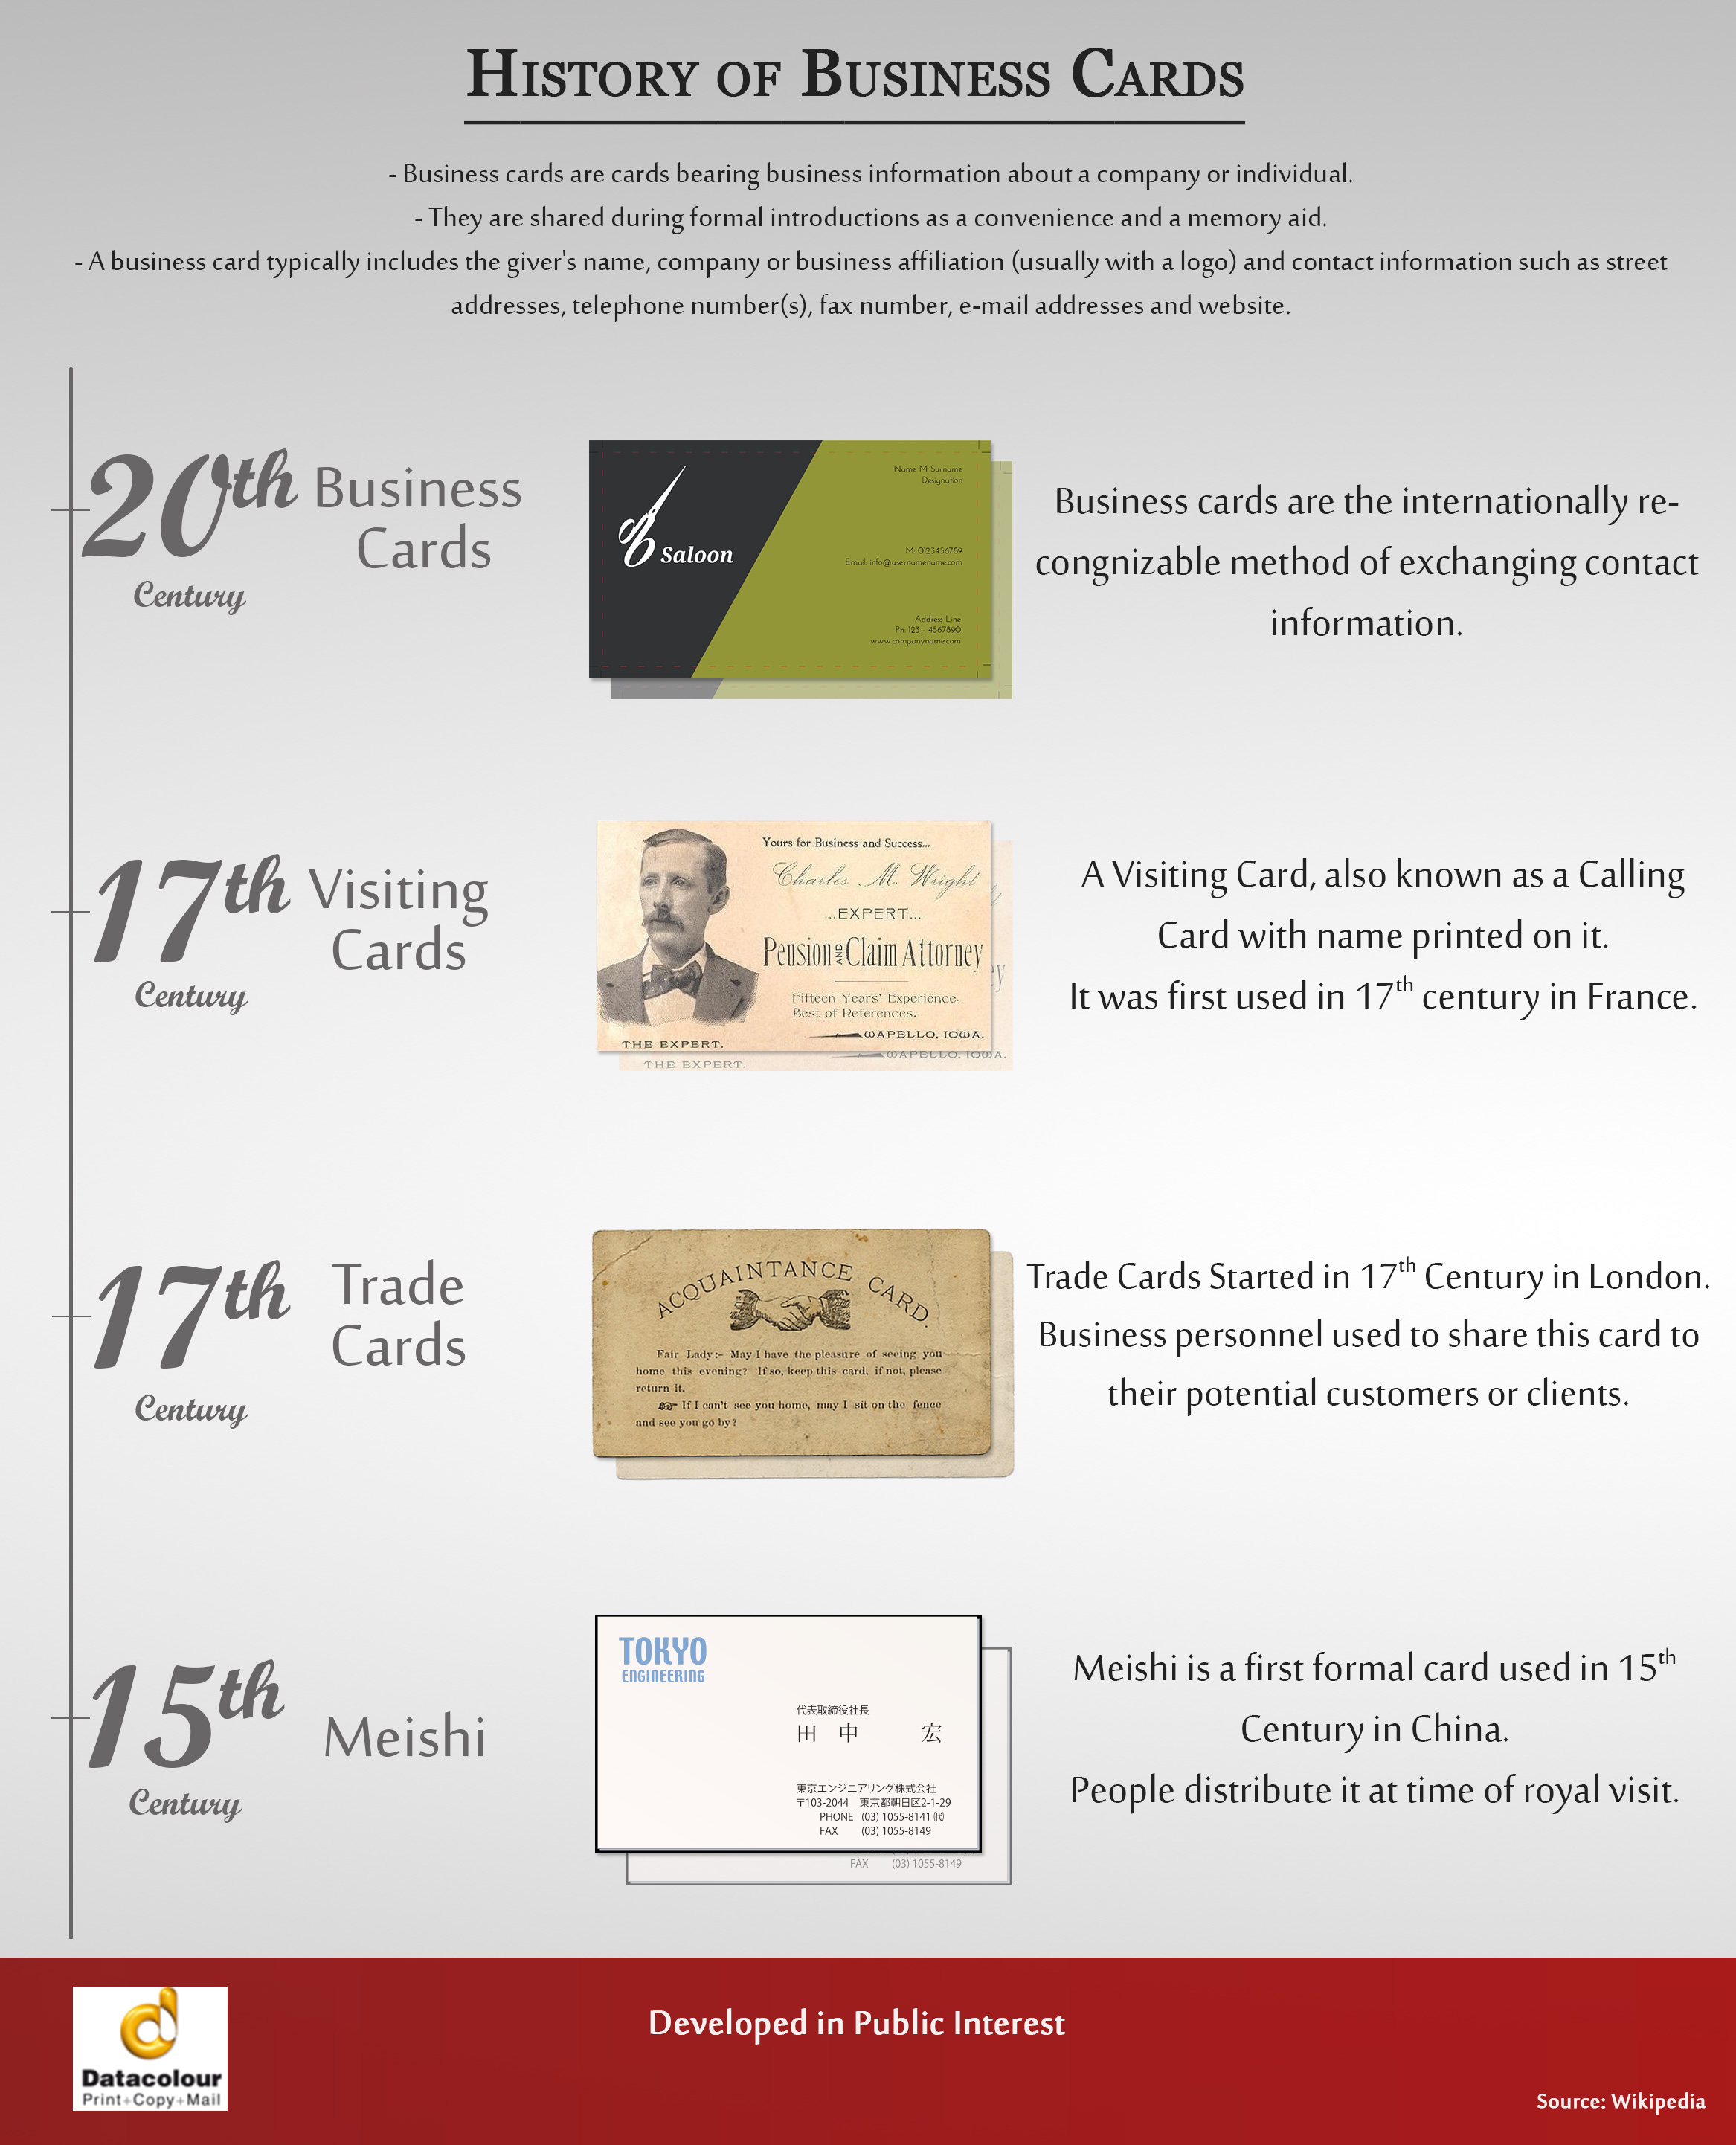 History of Business Cards | Visual.ly